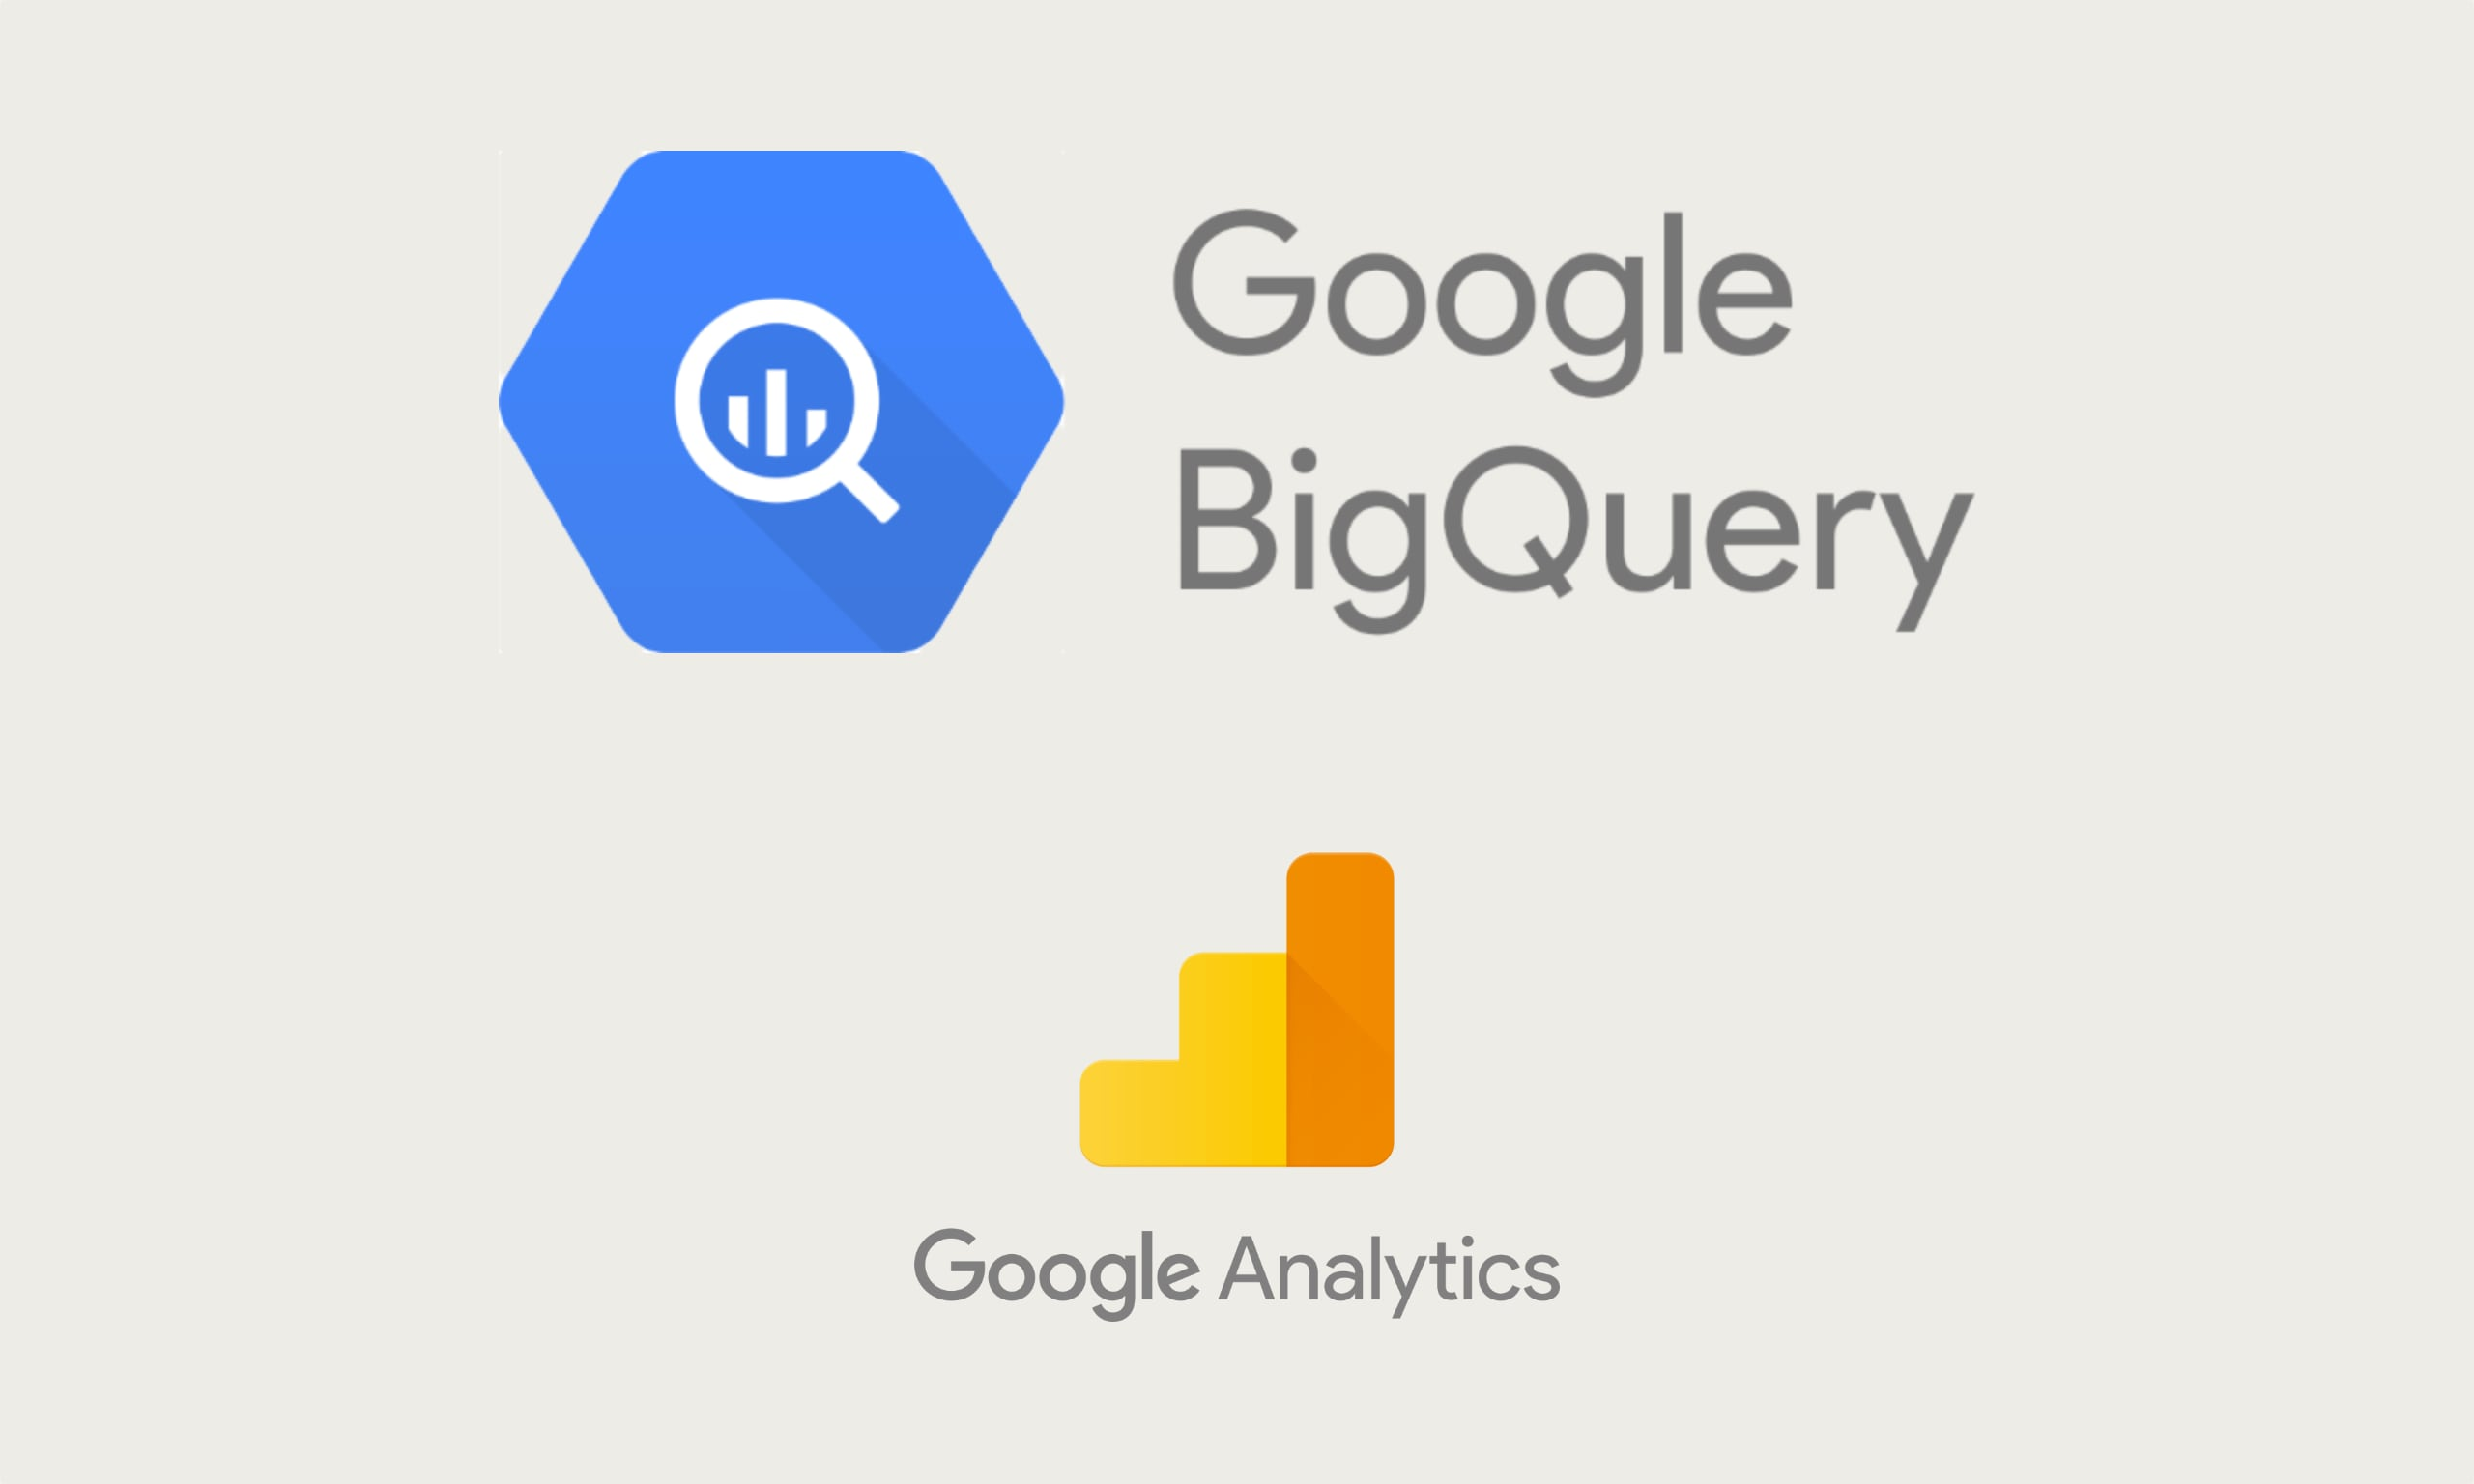 The first thing you should do once you've set up Google Analytics 4 - Linking GA4 to Google BigQuery